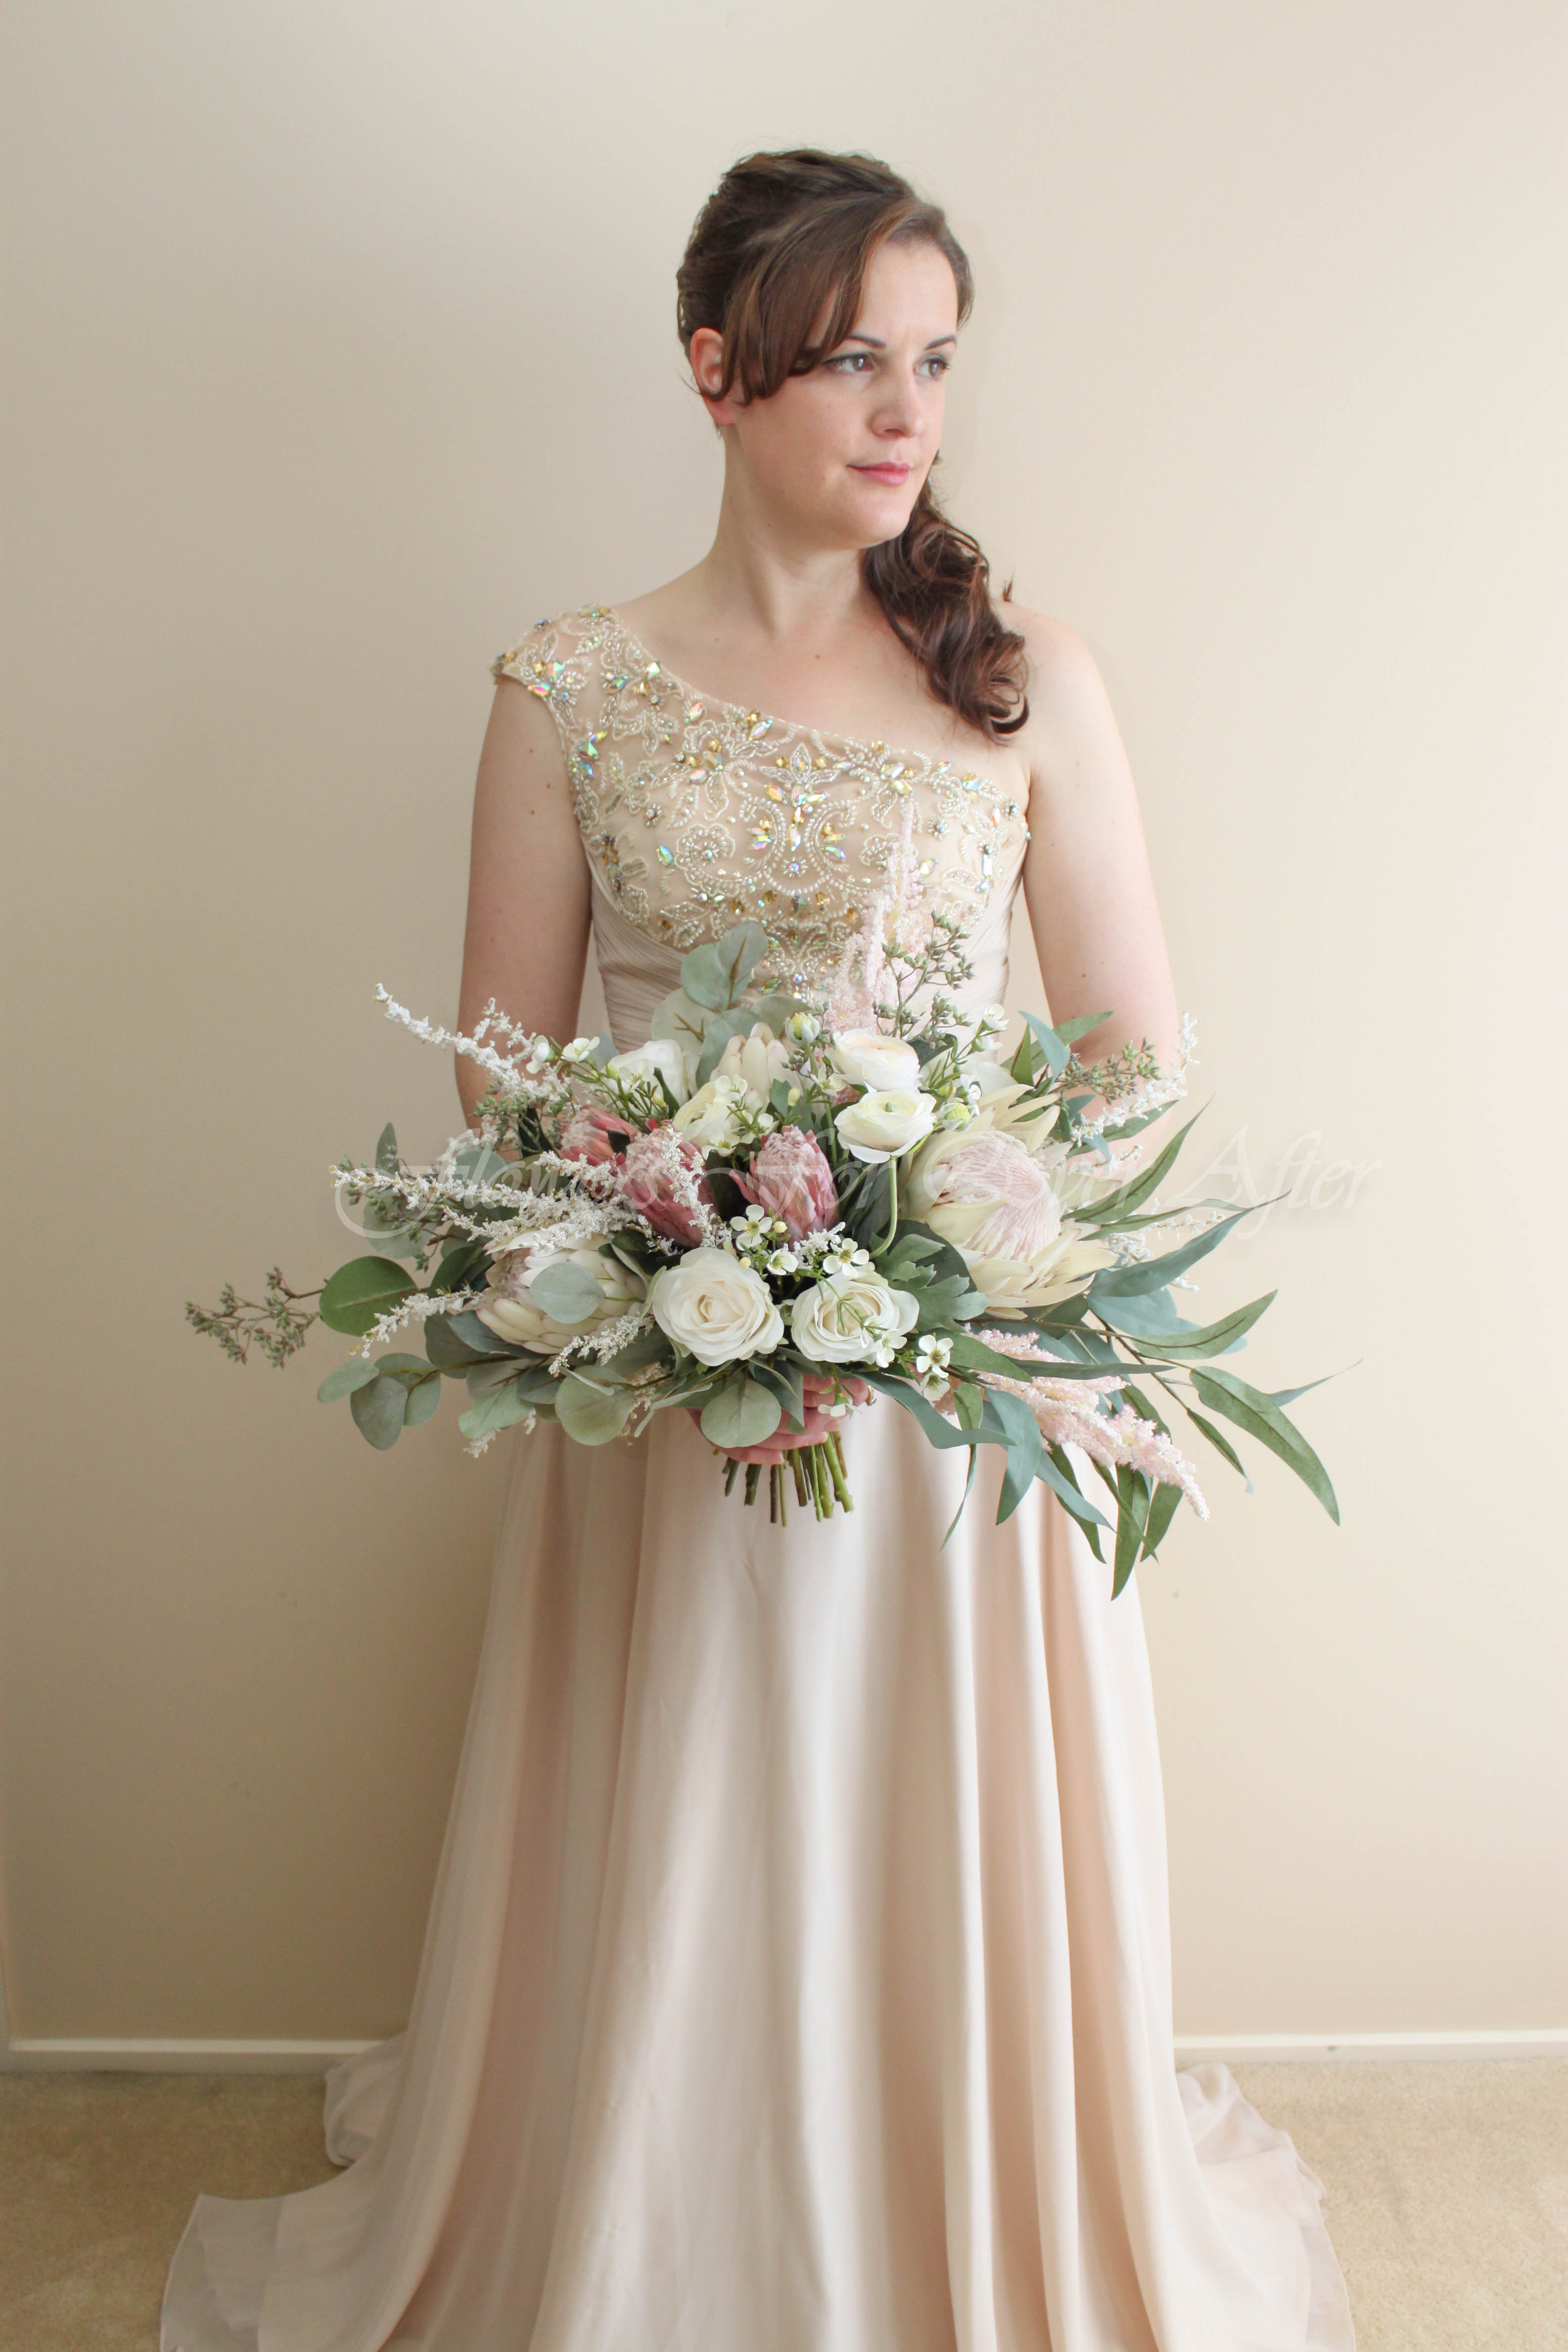 Silk Artificial bridal bouquet, stunning wedding flower design featuring faux protea, eucalyptus, roses, ranunculus, flowers. Arranged in a side sweeping loose garden posy style. Made in Melbourne Australia by Flowers For Ever After. Custom Designs welcome Worldwide shipping available.